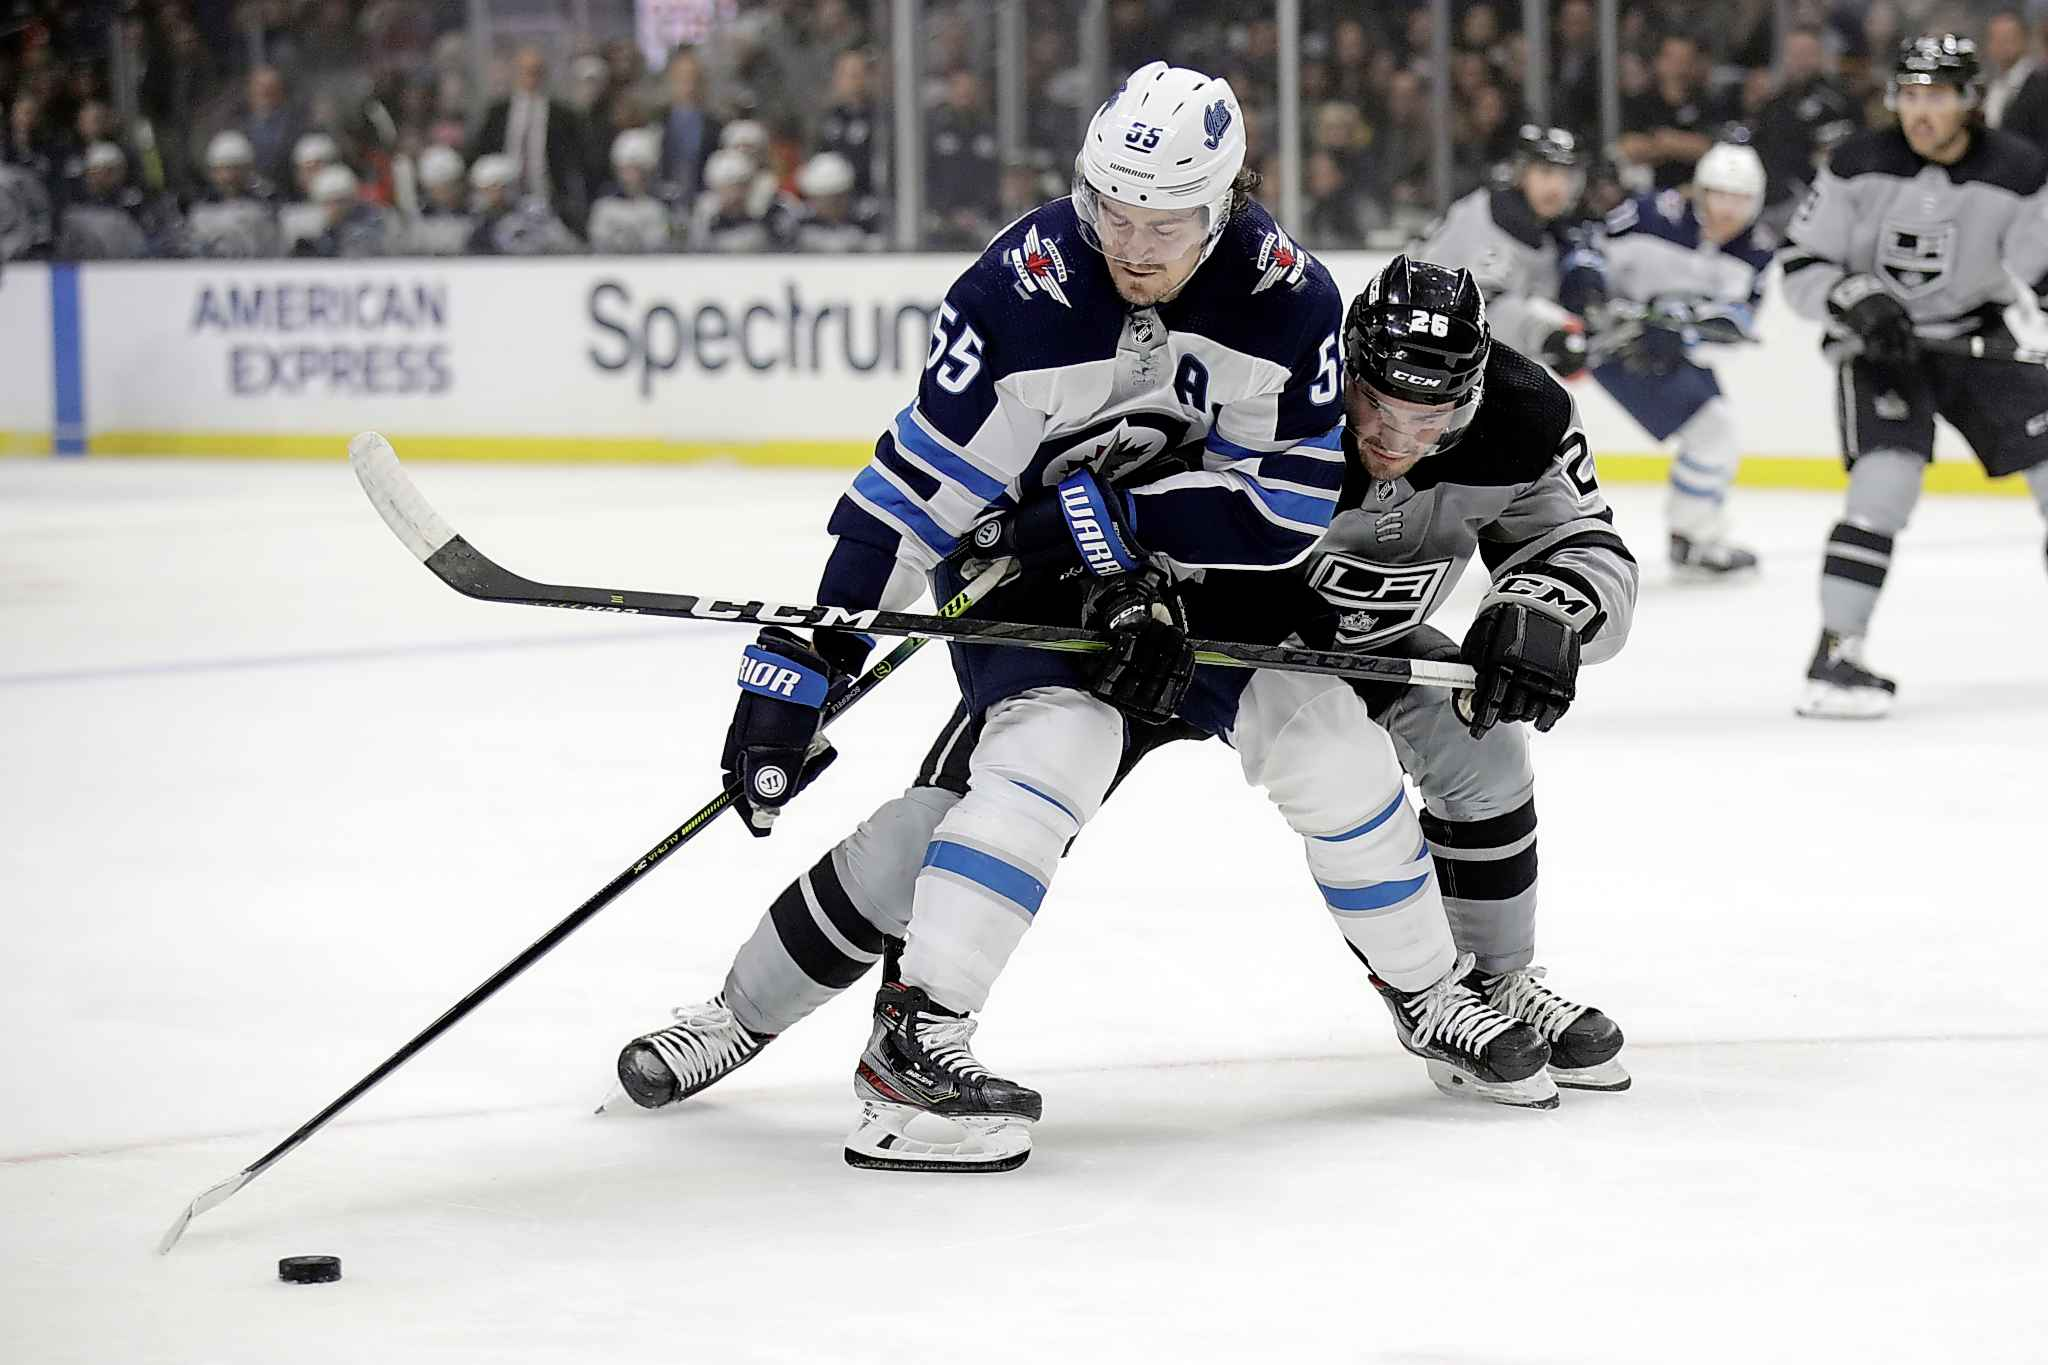 Mark Scheifele works the puck against Sean Walker Saturday in Los Angeles. (Marcio Jose Sanchez / The Associated Press)